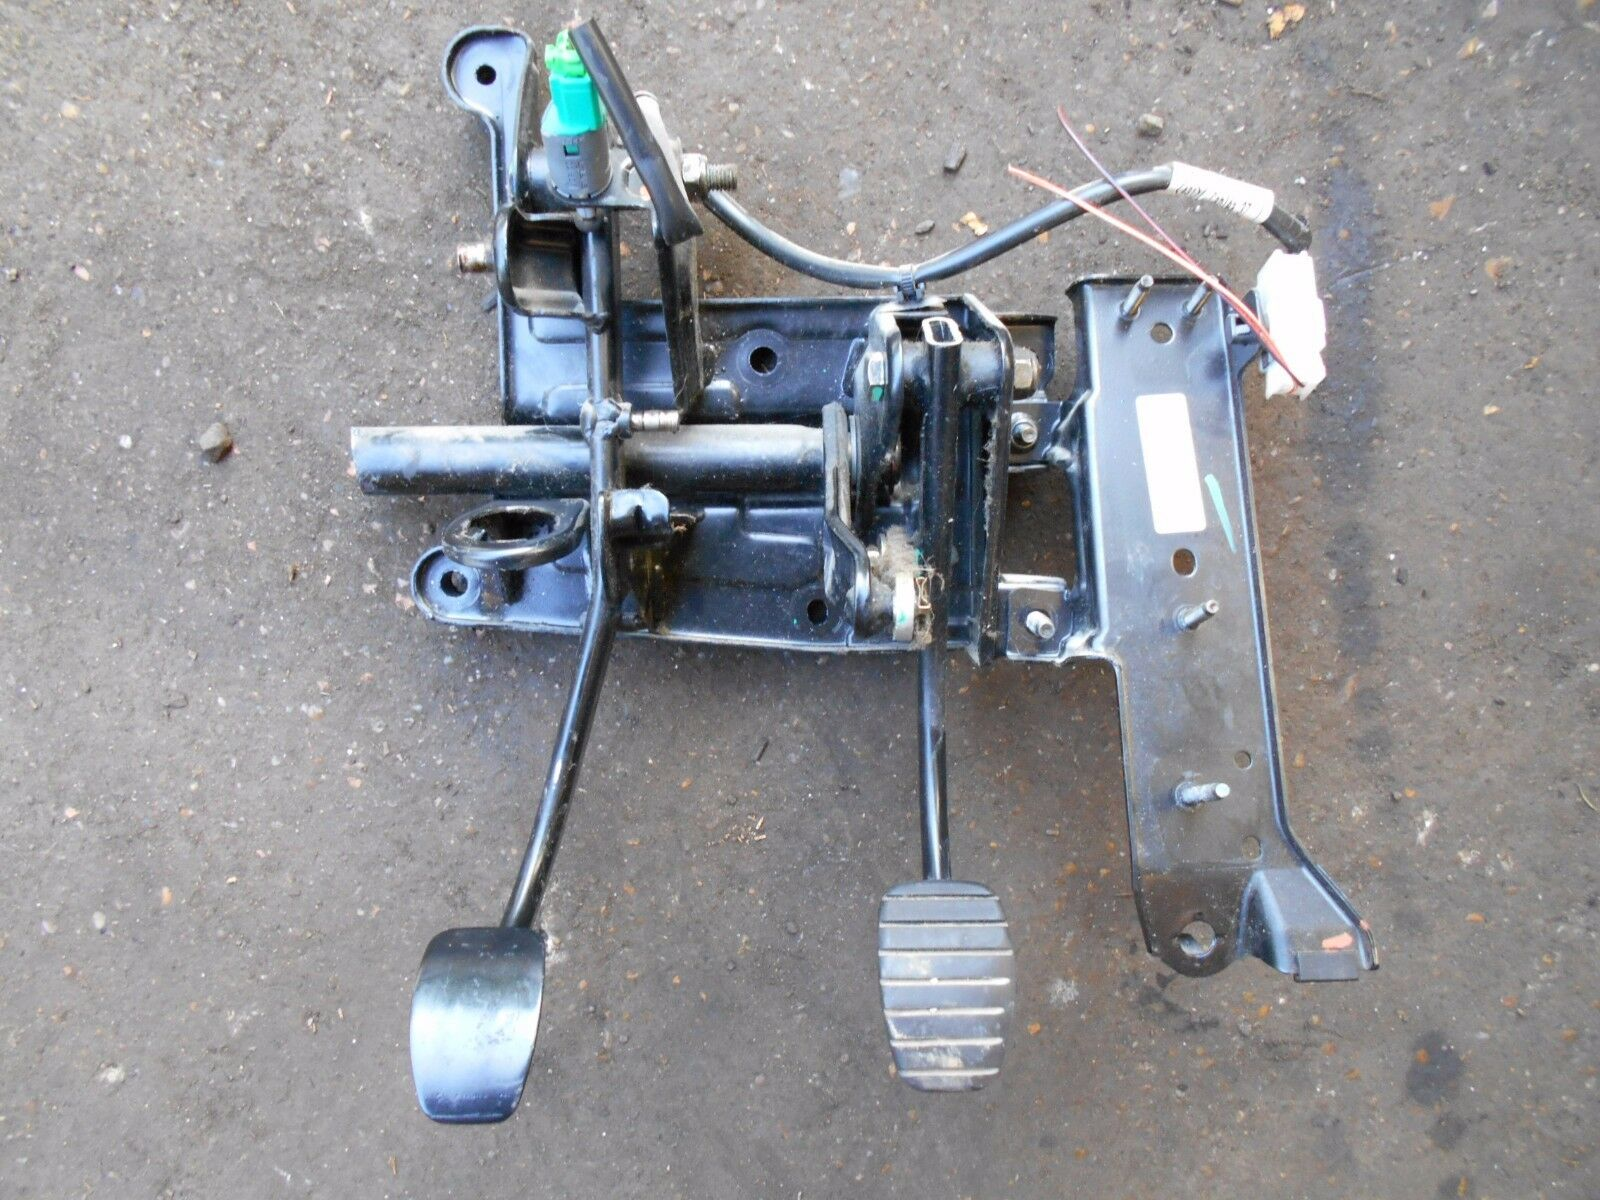 1952 dodge pickup wiring diagram with Master Cylinder Location on Agora cgi furthermore Mousetrap Car Wont Move likewise Index also Gm Headlight Switch Circuit Functions likewise Chevy 1956 Neutral Wiring Diagram.